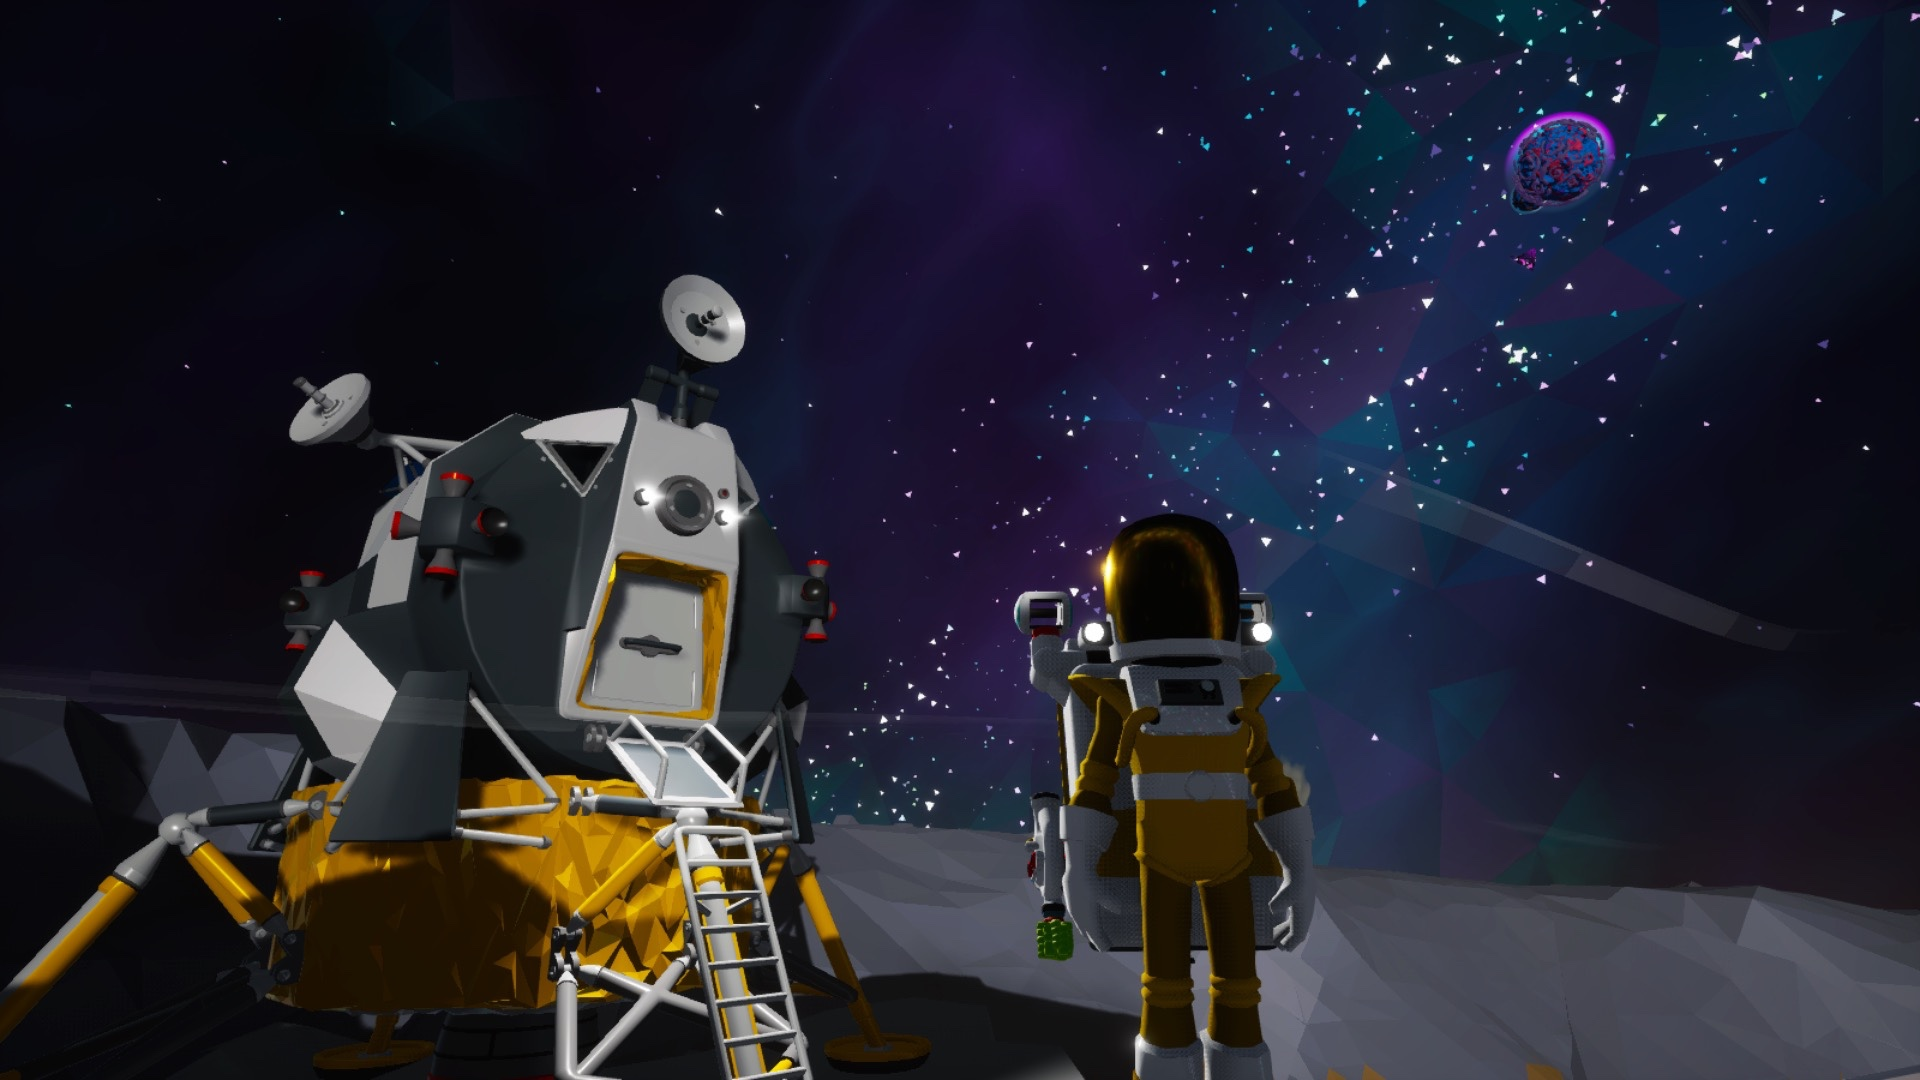 The lunar lander in Astroneer